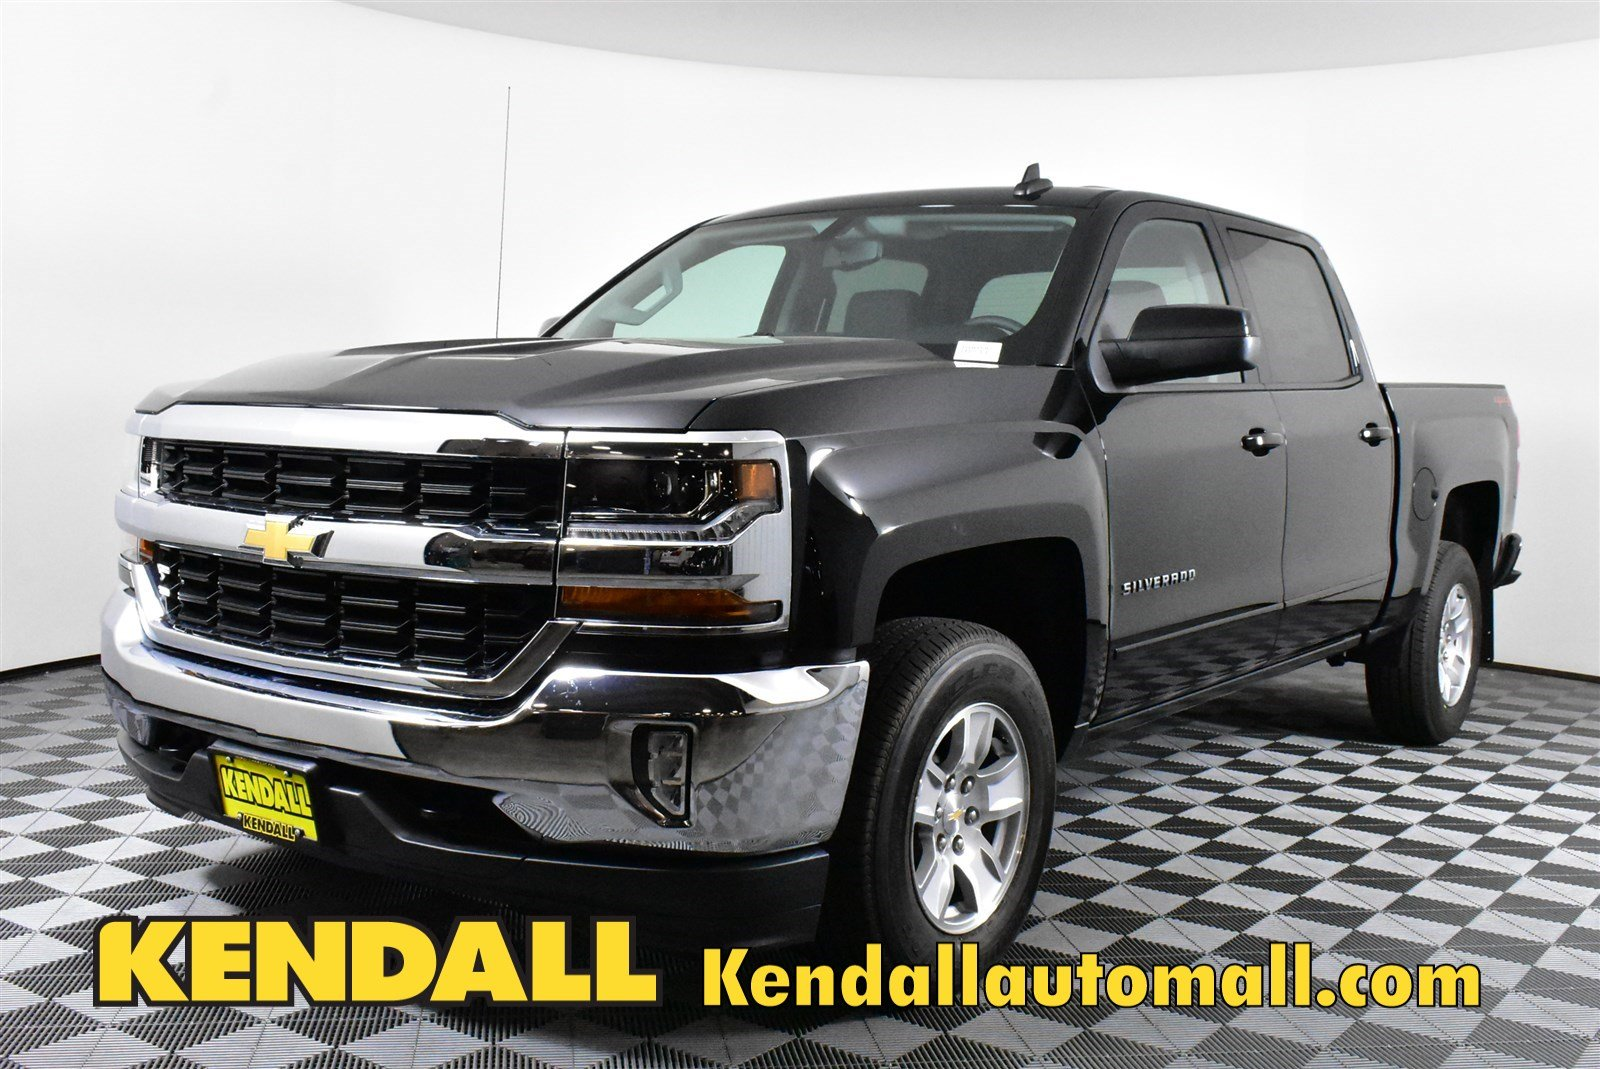 New Car Specials Boise Kendall At The Idaho Center Auto Mall 2001 Toyota 4runner Fuel Filter Location Lease A 2018 Chevrolet Silverado Crew 1500 Lt 4wd